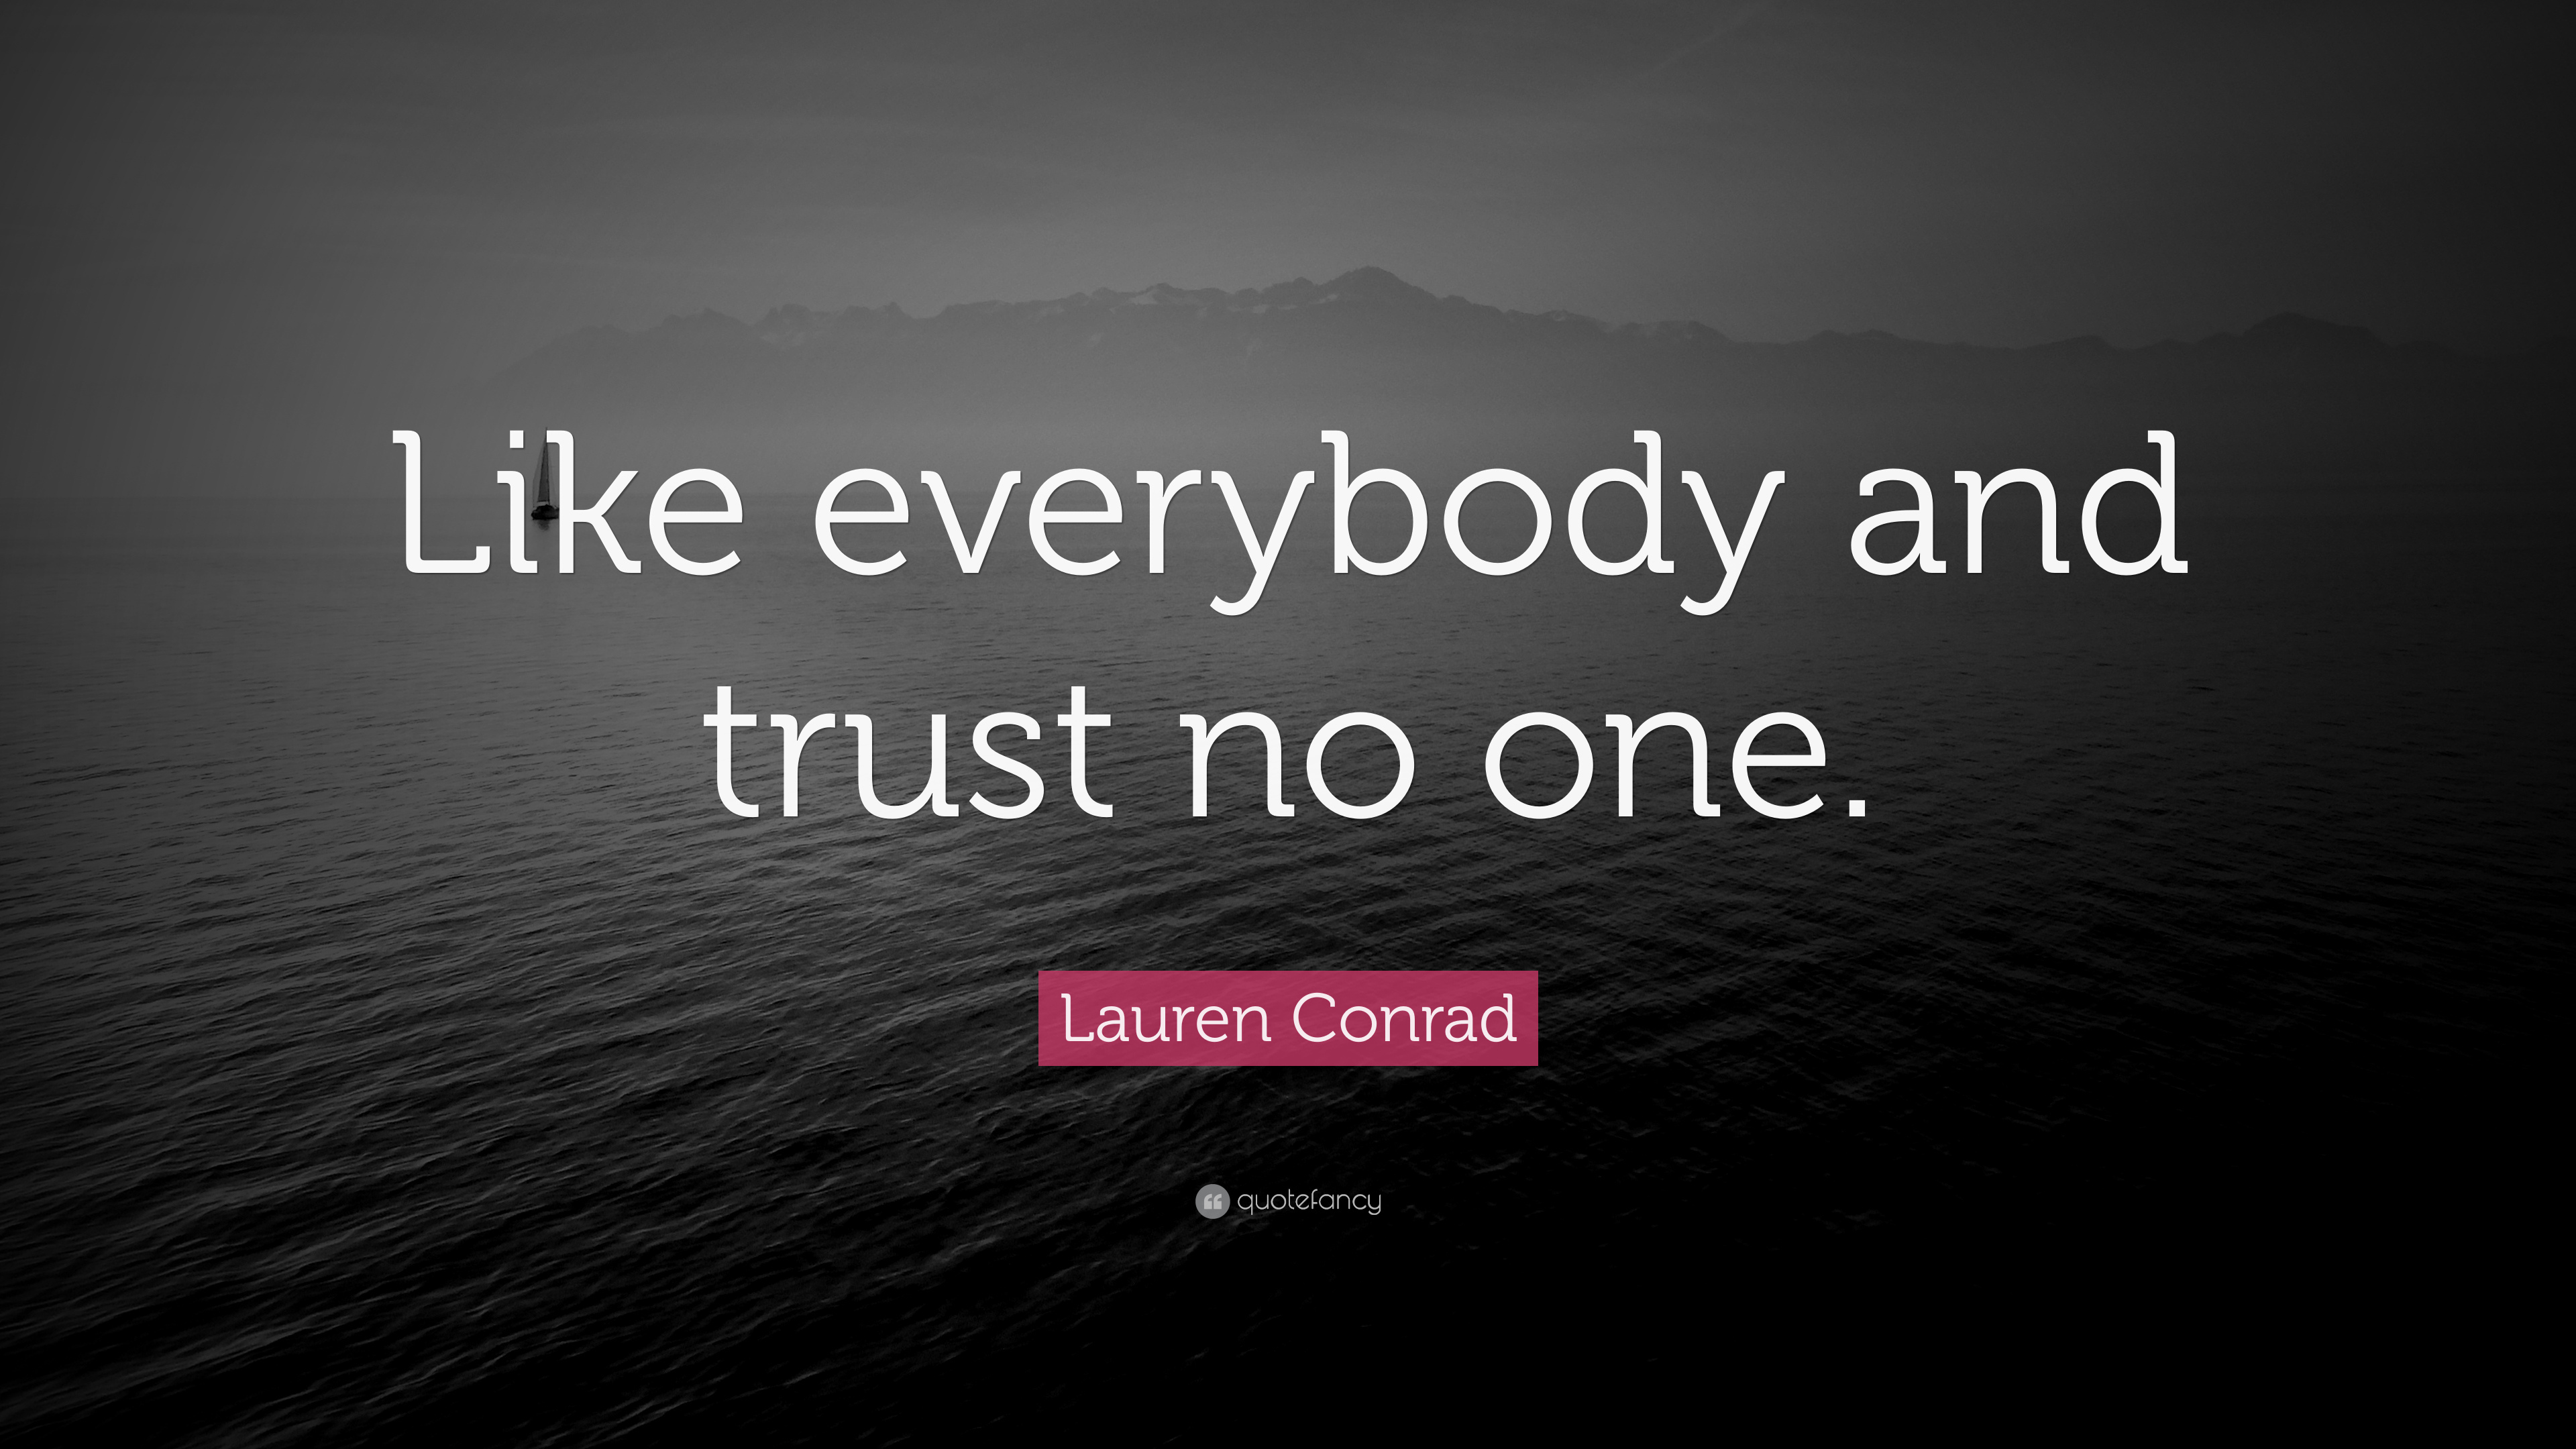 """Lauren Conrad Quote: """"Like everybody and trust no one."""" (9 ..."""